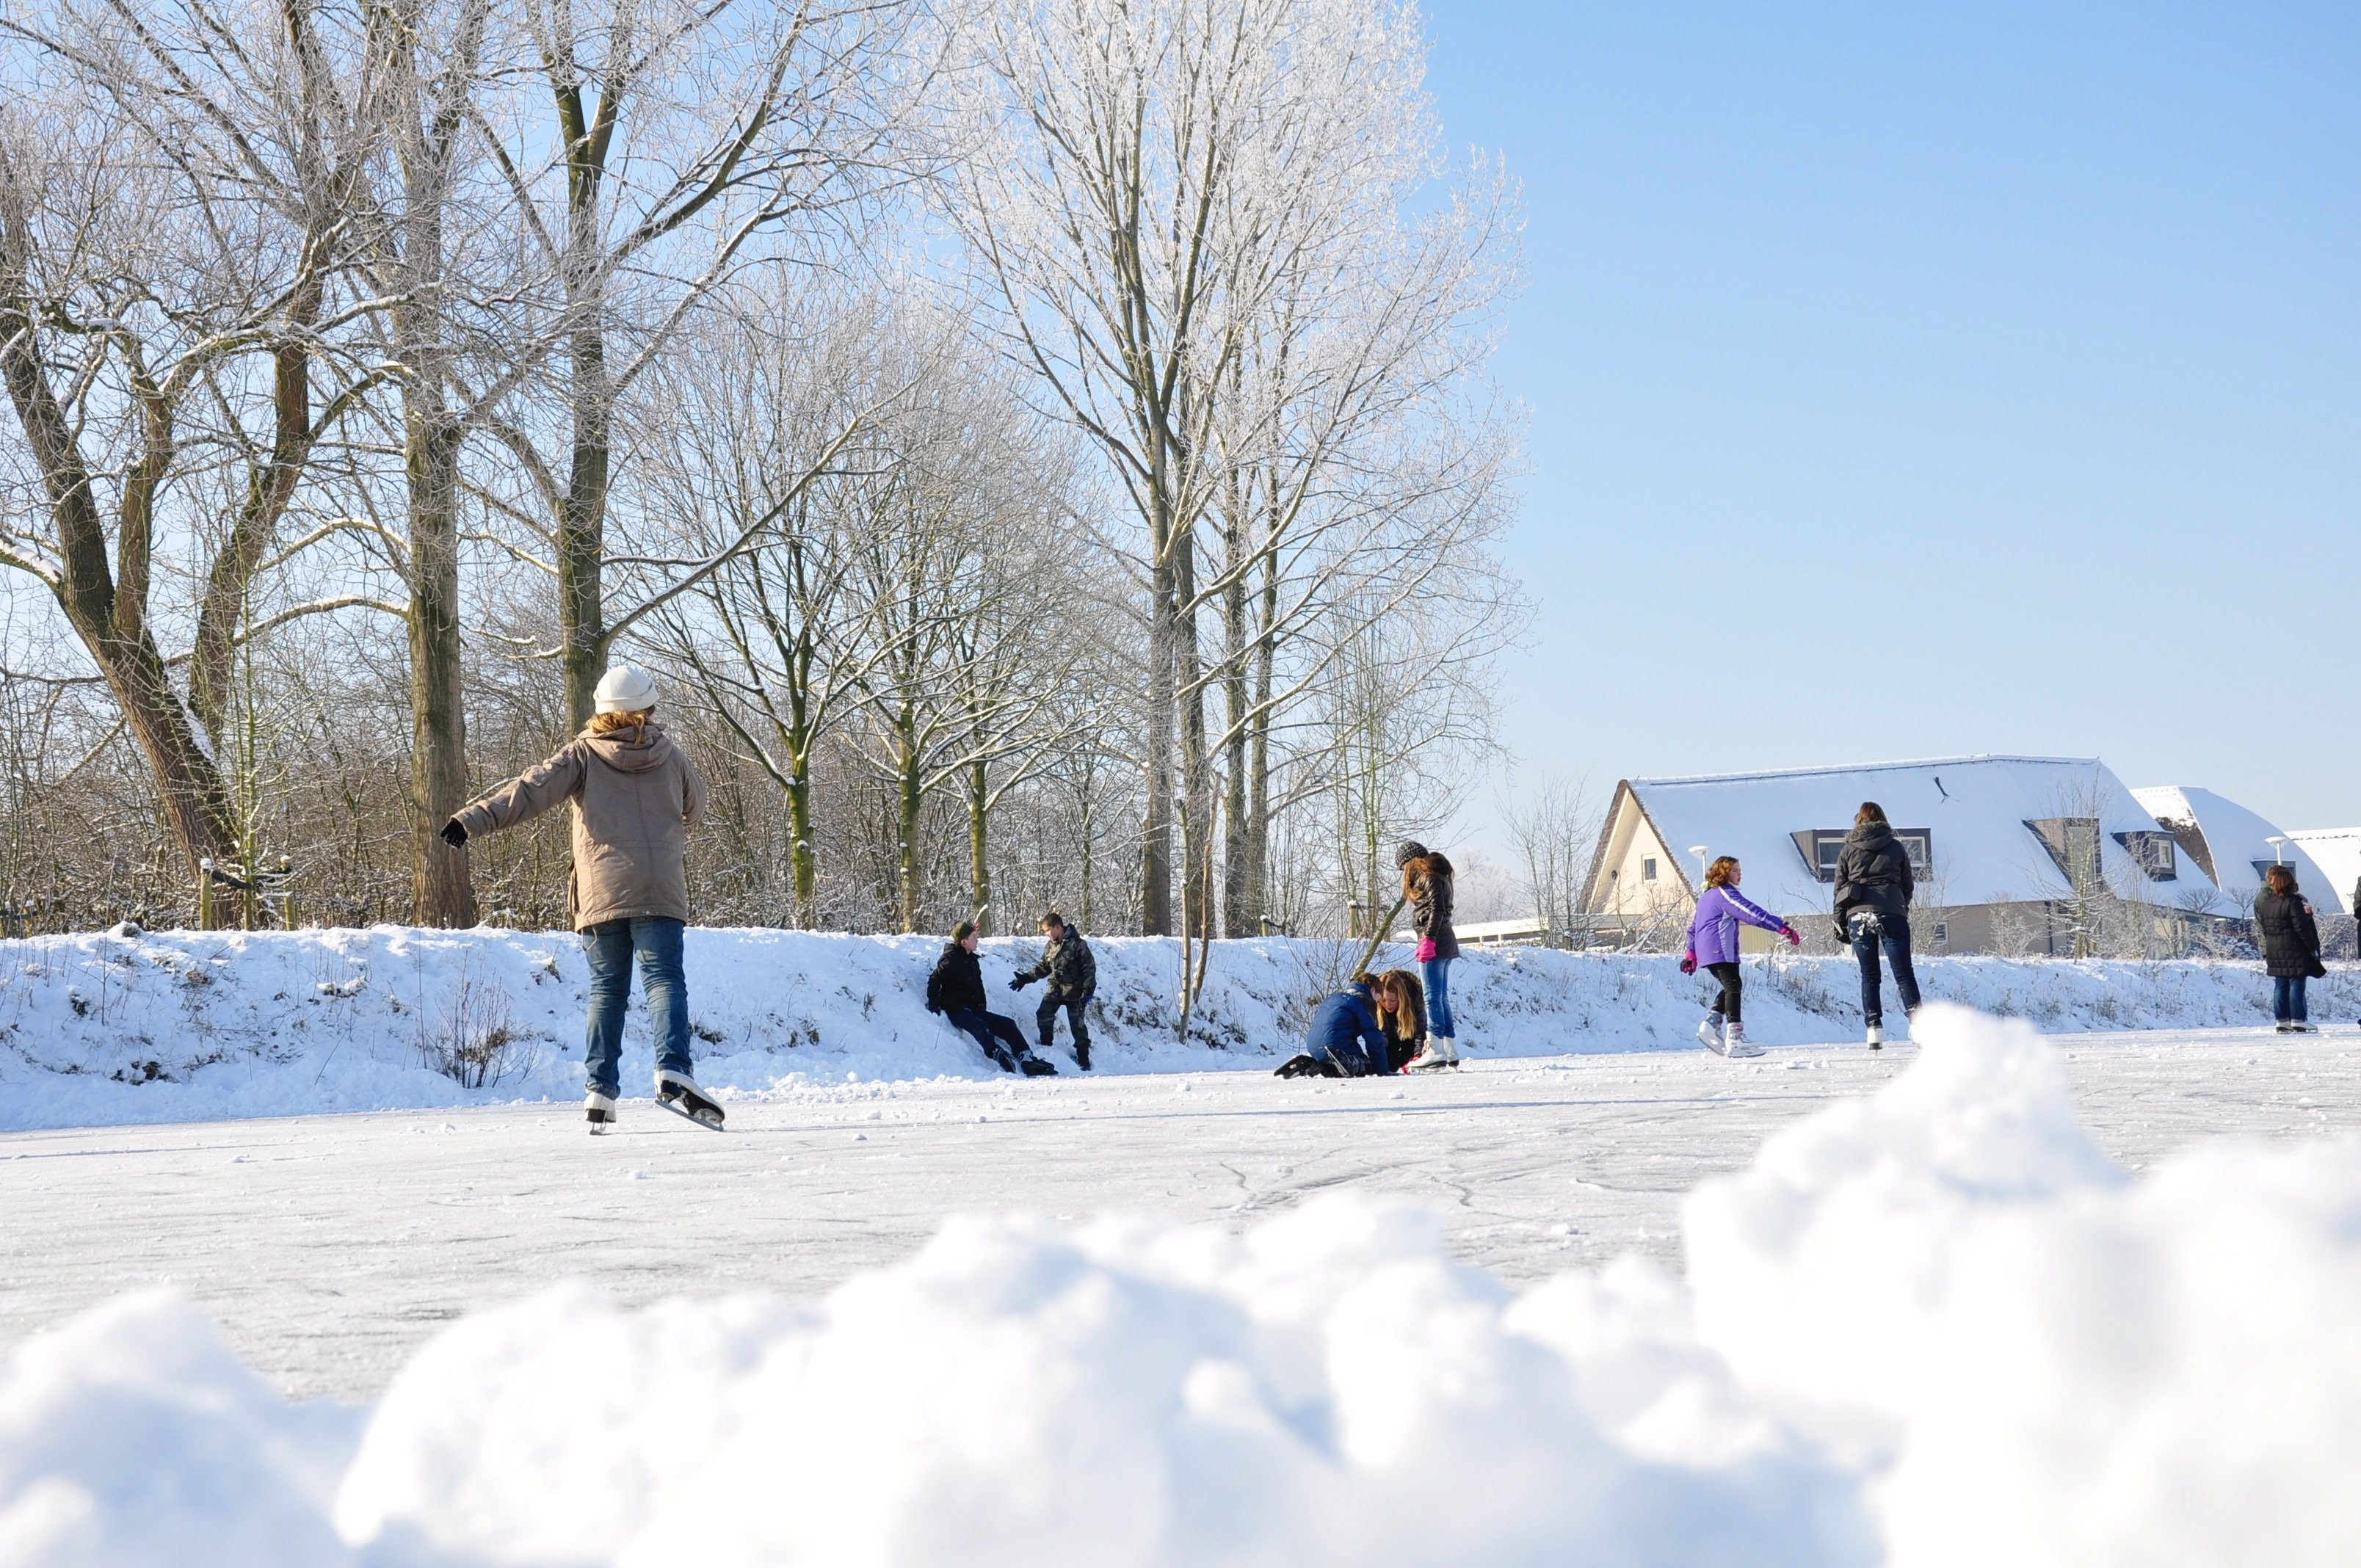 Canva - Snow, Ice Skating, Ice, Winter, Netherlands, Fun, White